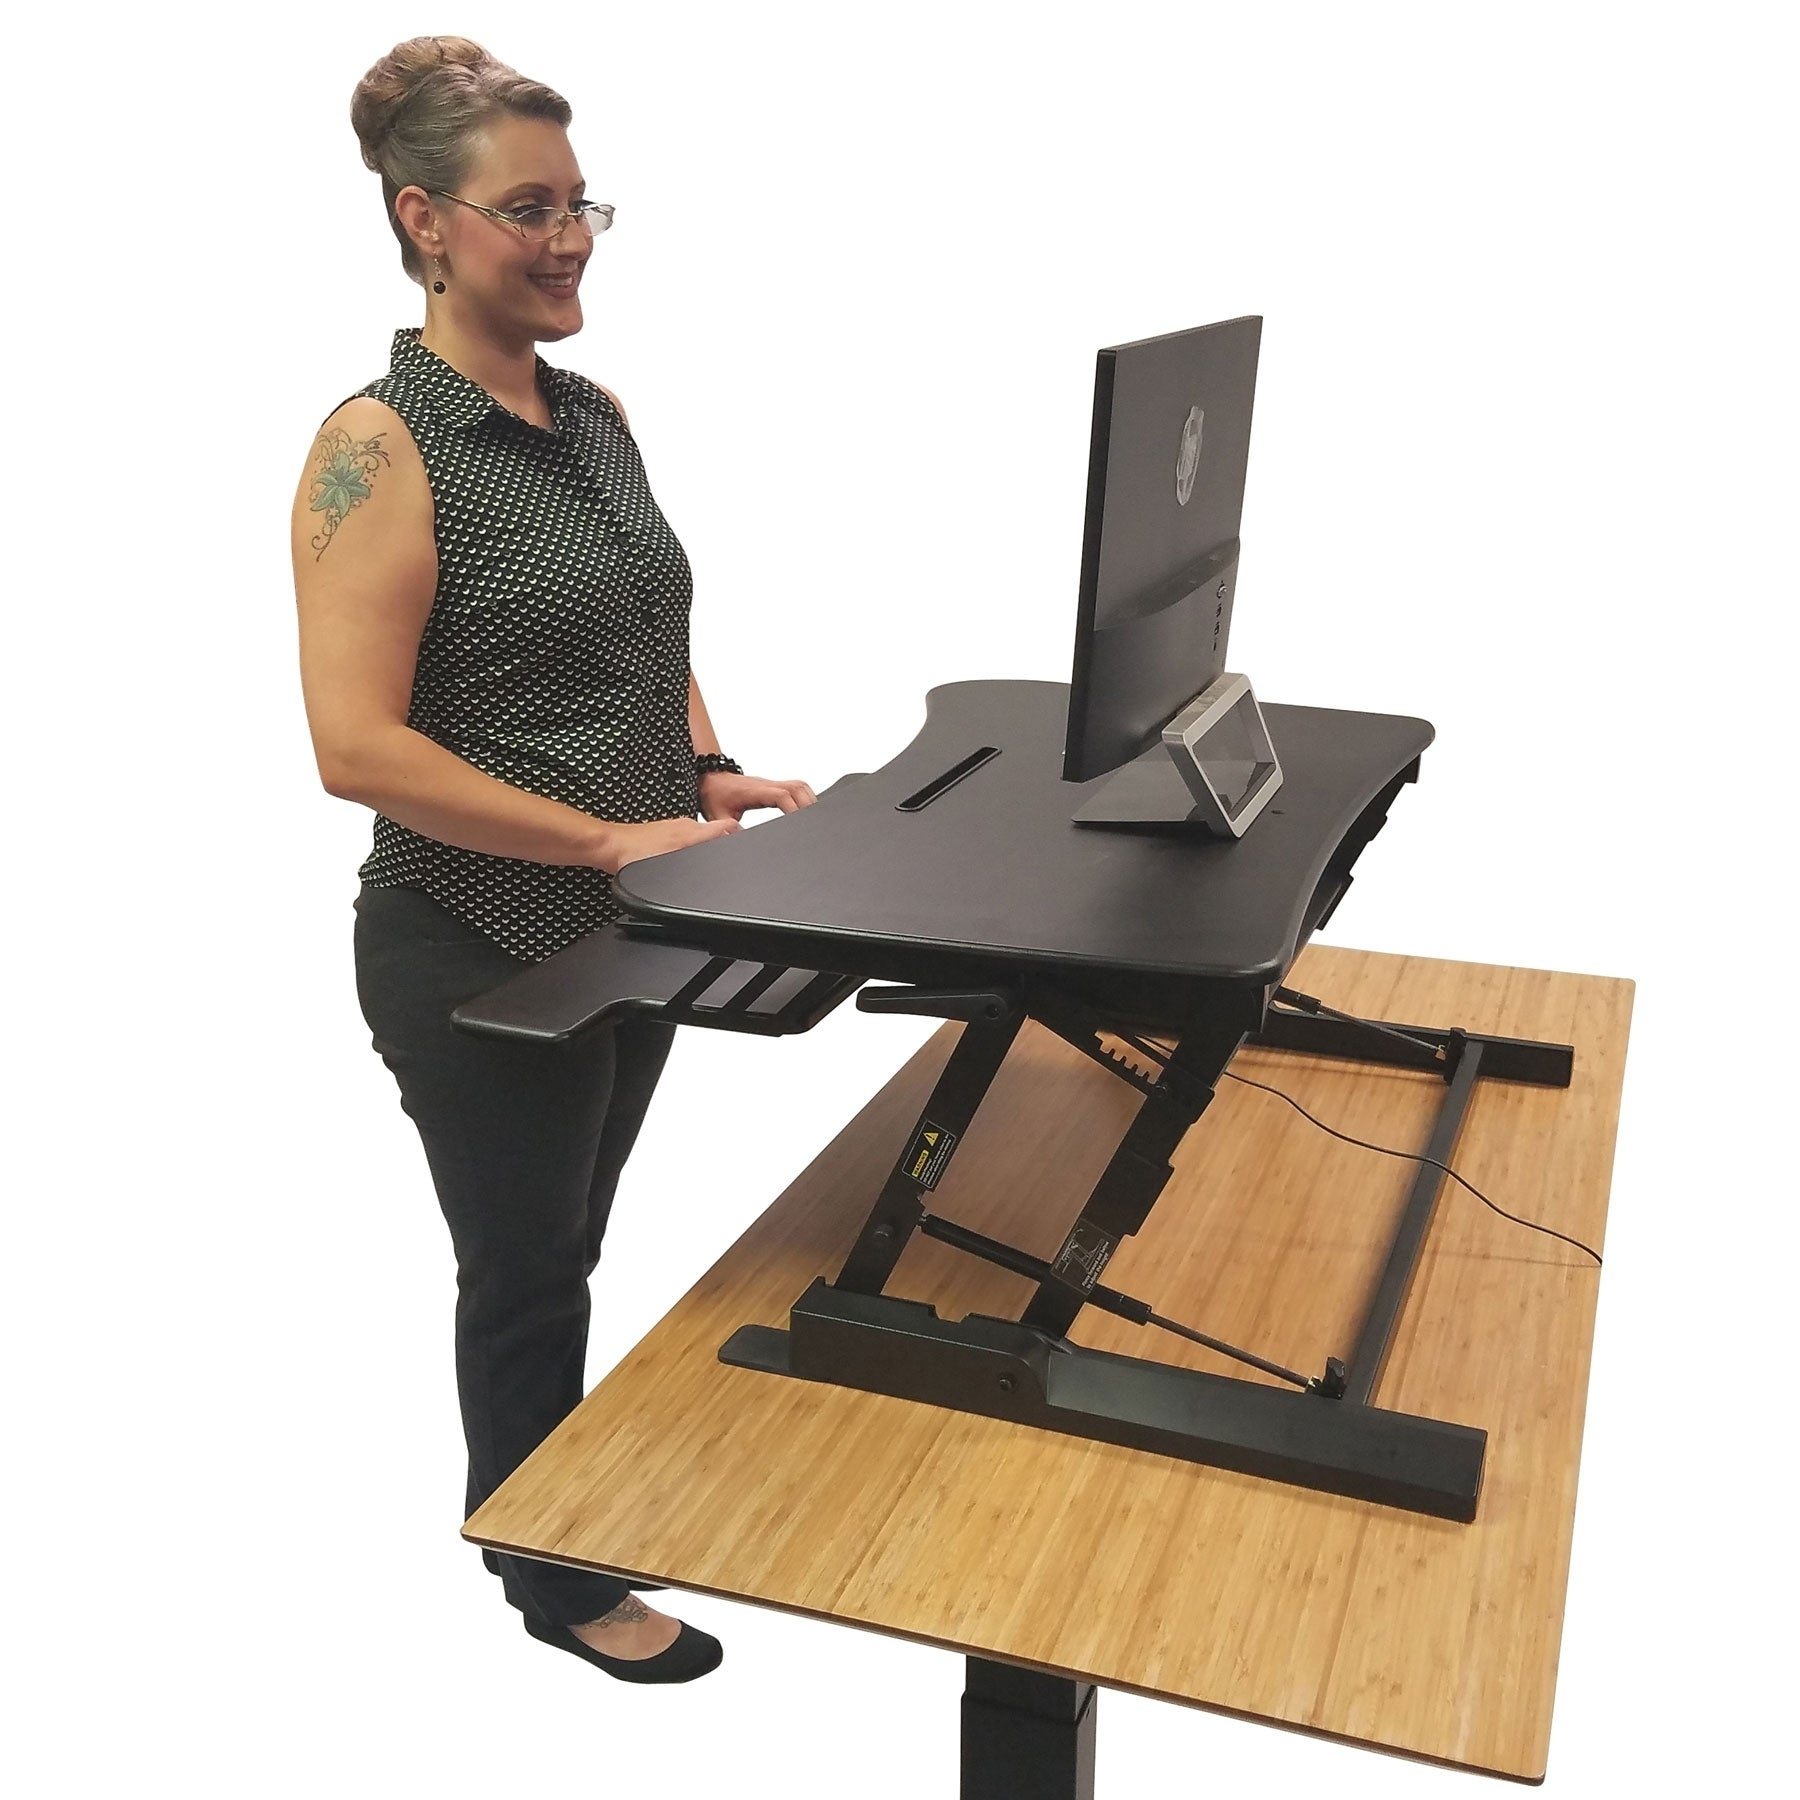 Picture of: Boonliving Adjustable Desk Sit And Stand Computer Riser For Home And Office Use Ergonomic Workstation With Keyboard Tray On Sale Overstock 17696635